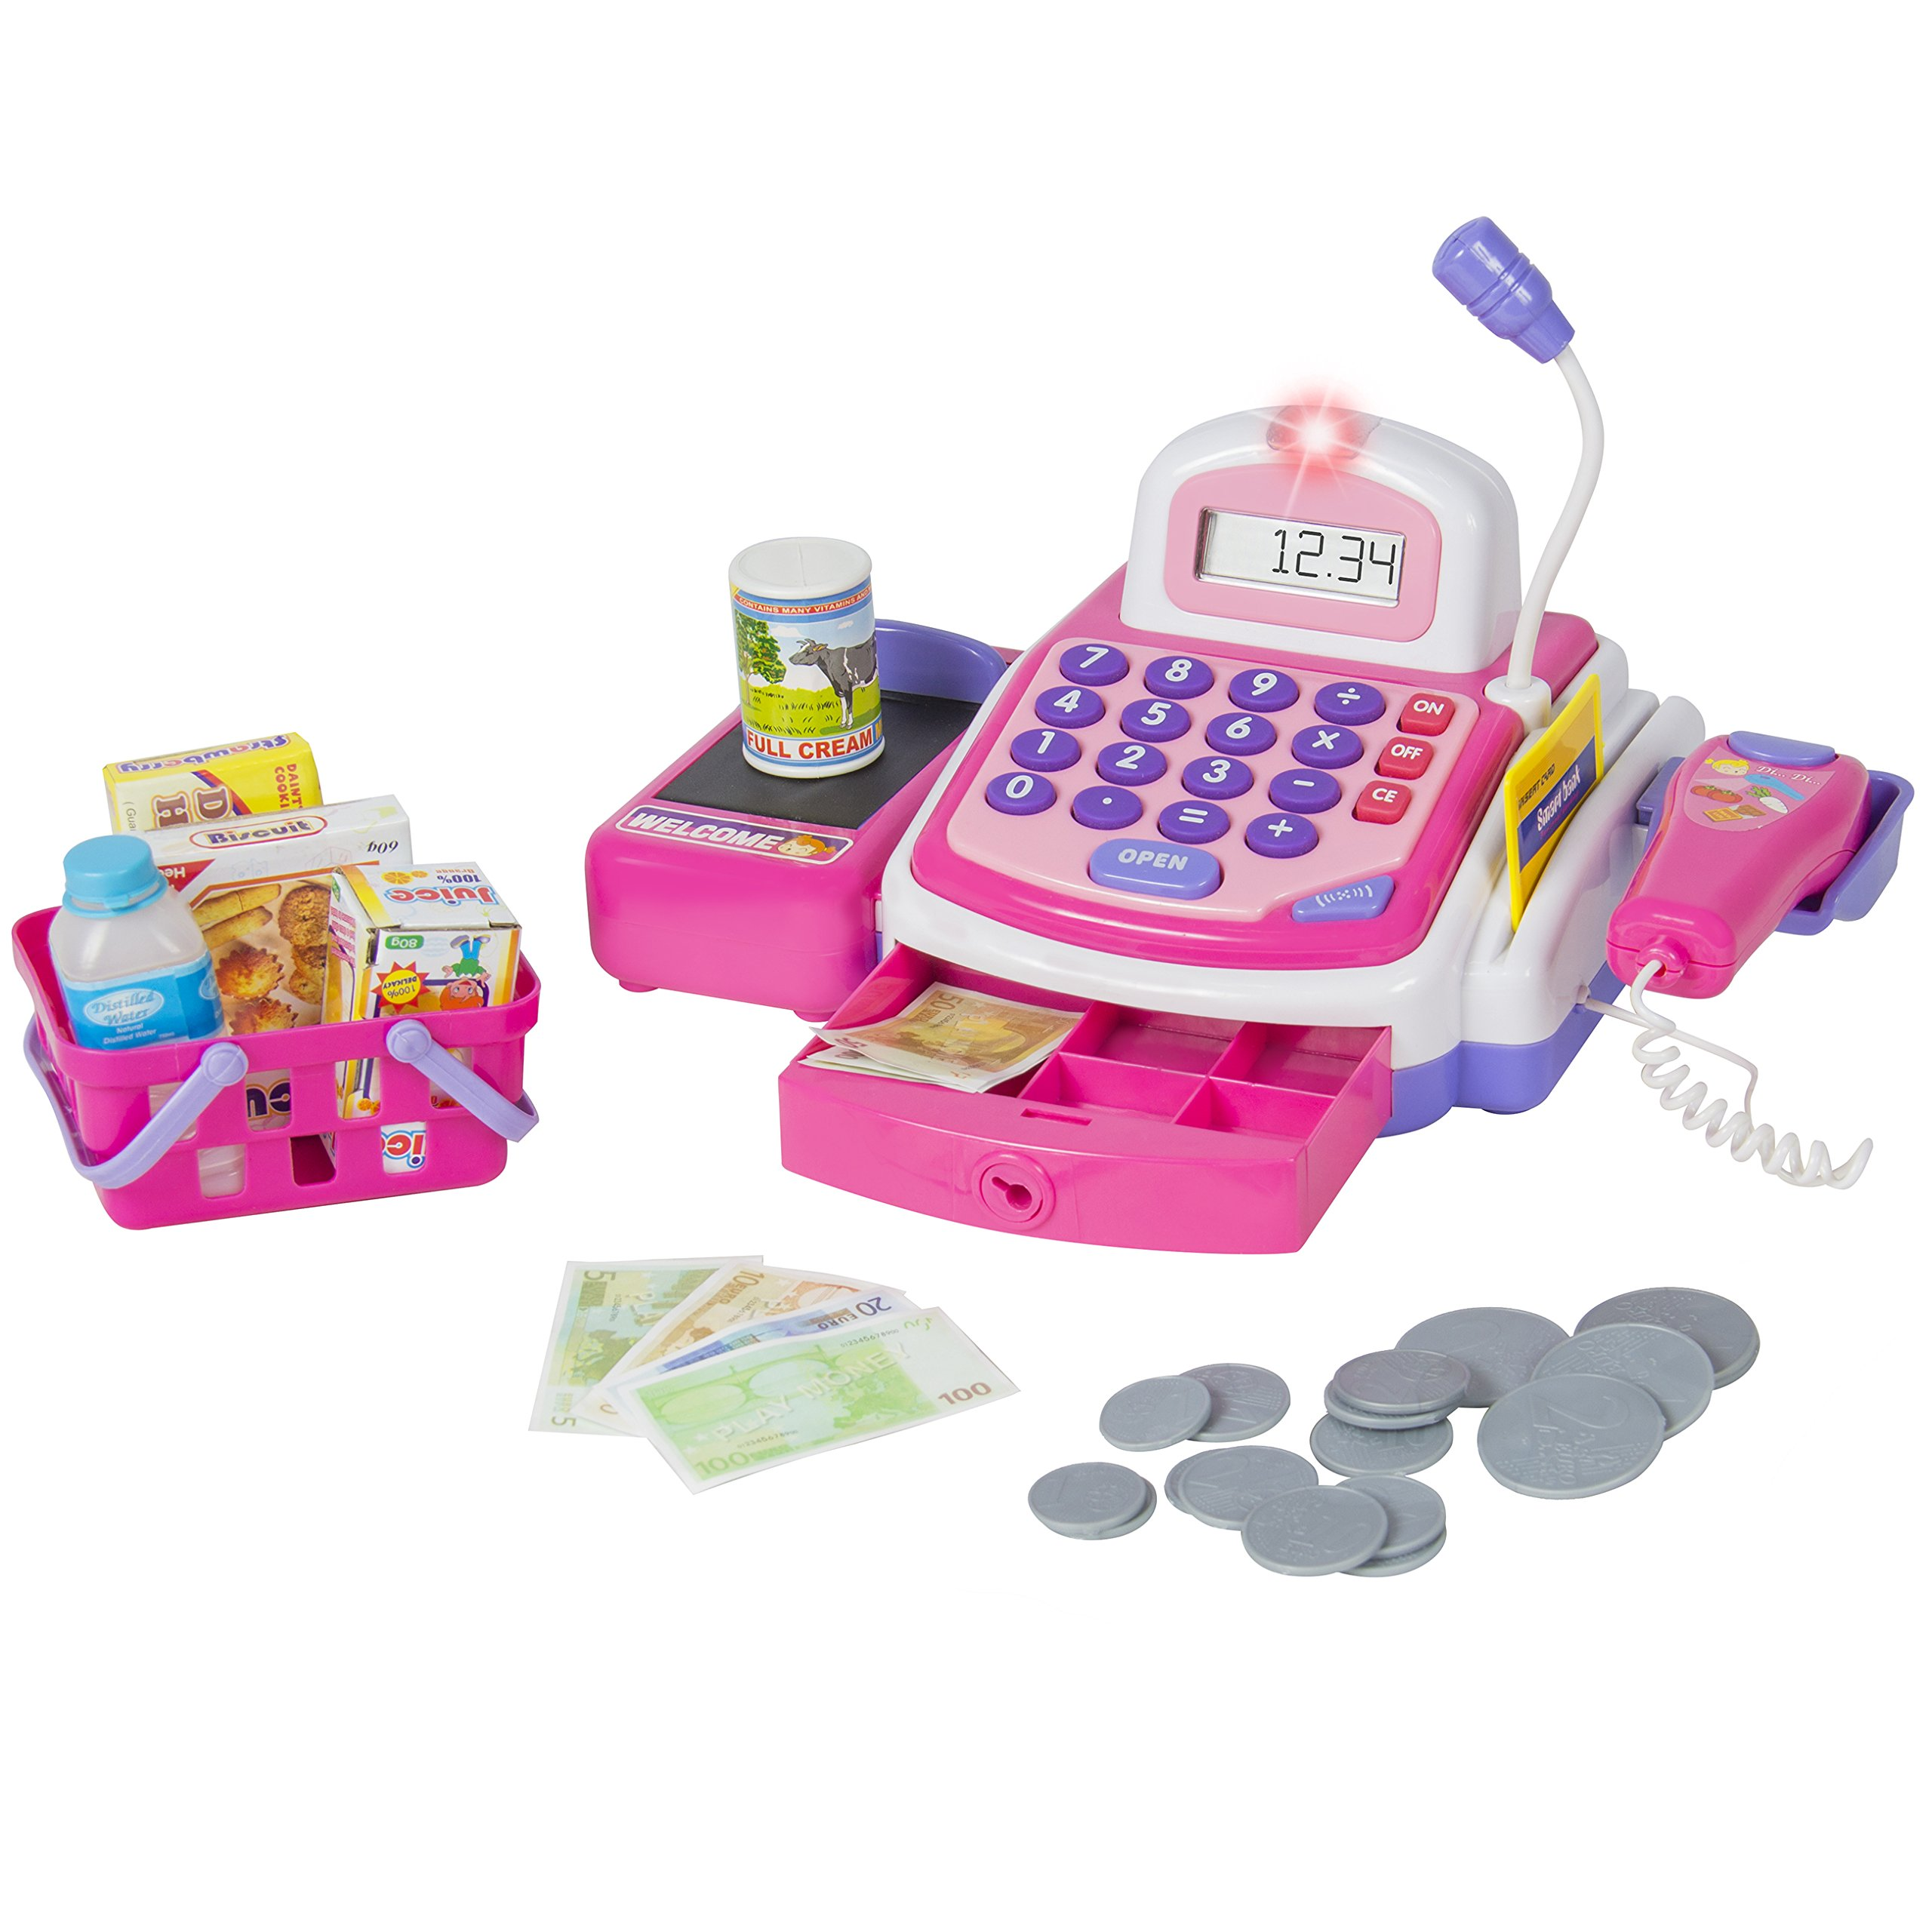 Best Choice Products Pretend Play Electronic Cash Register with Realistic Actions & Sounds, Pink by Best Choice Products